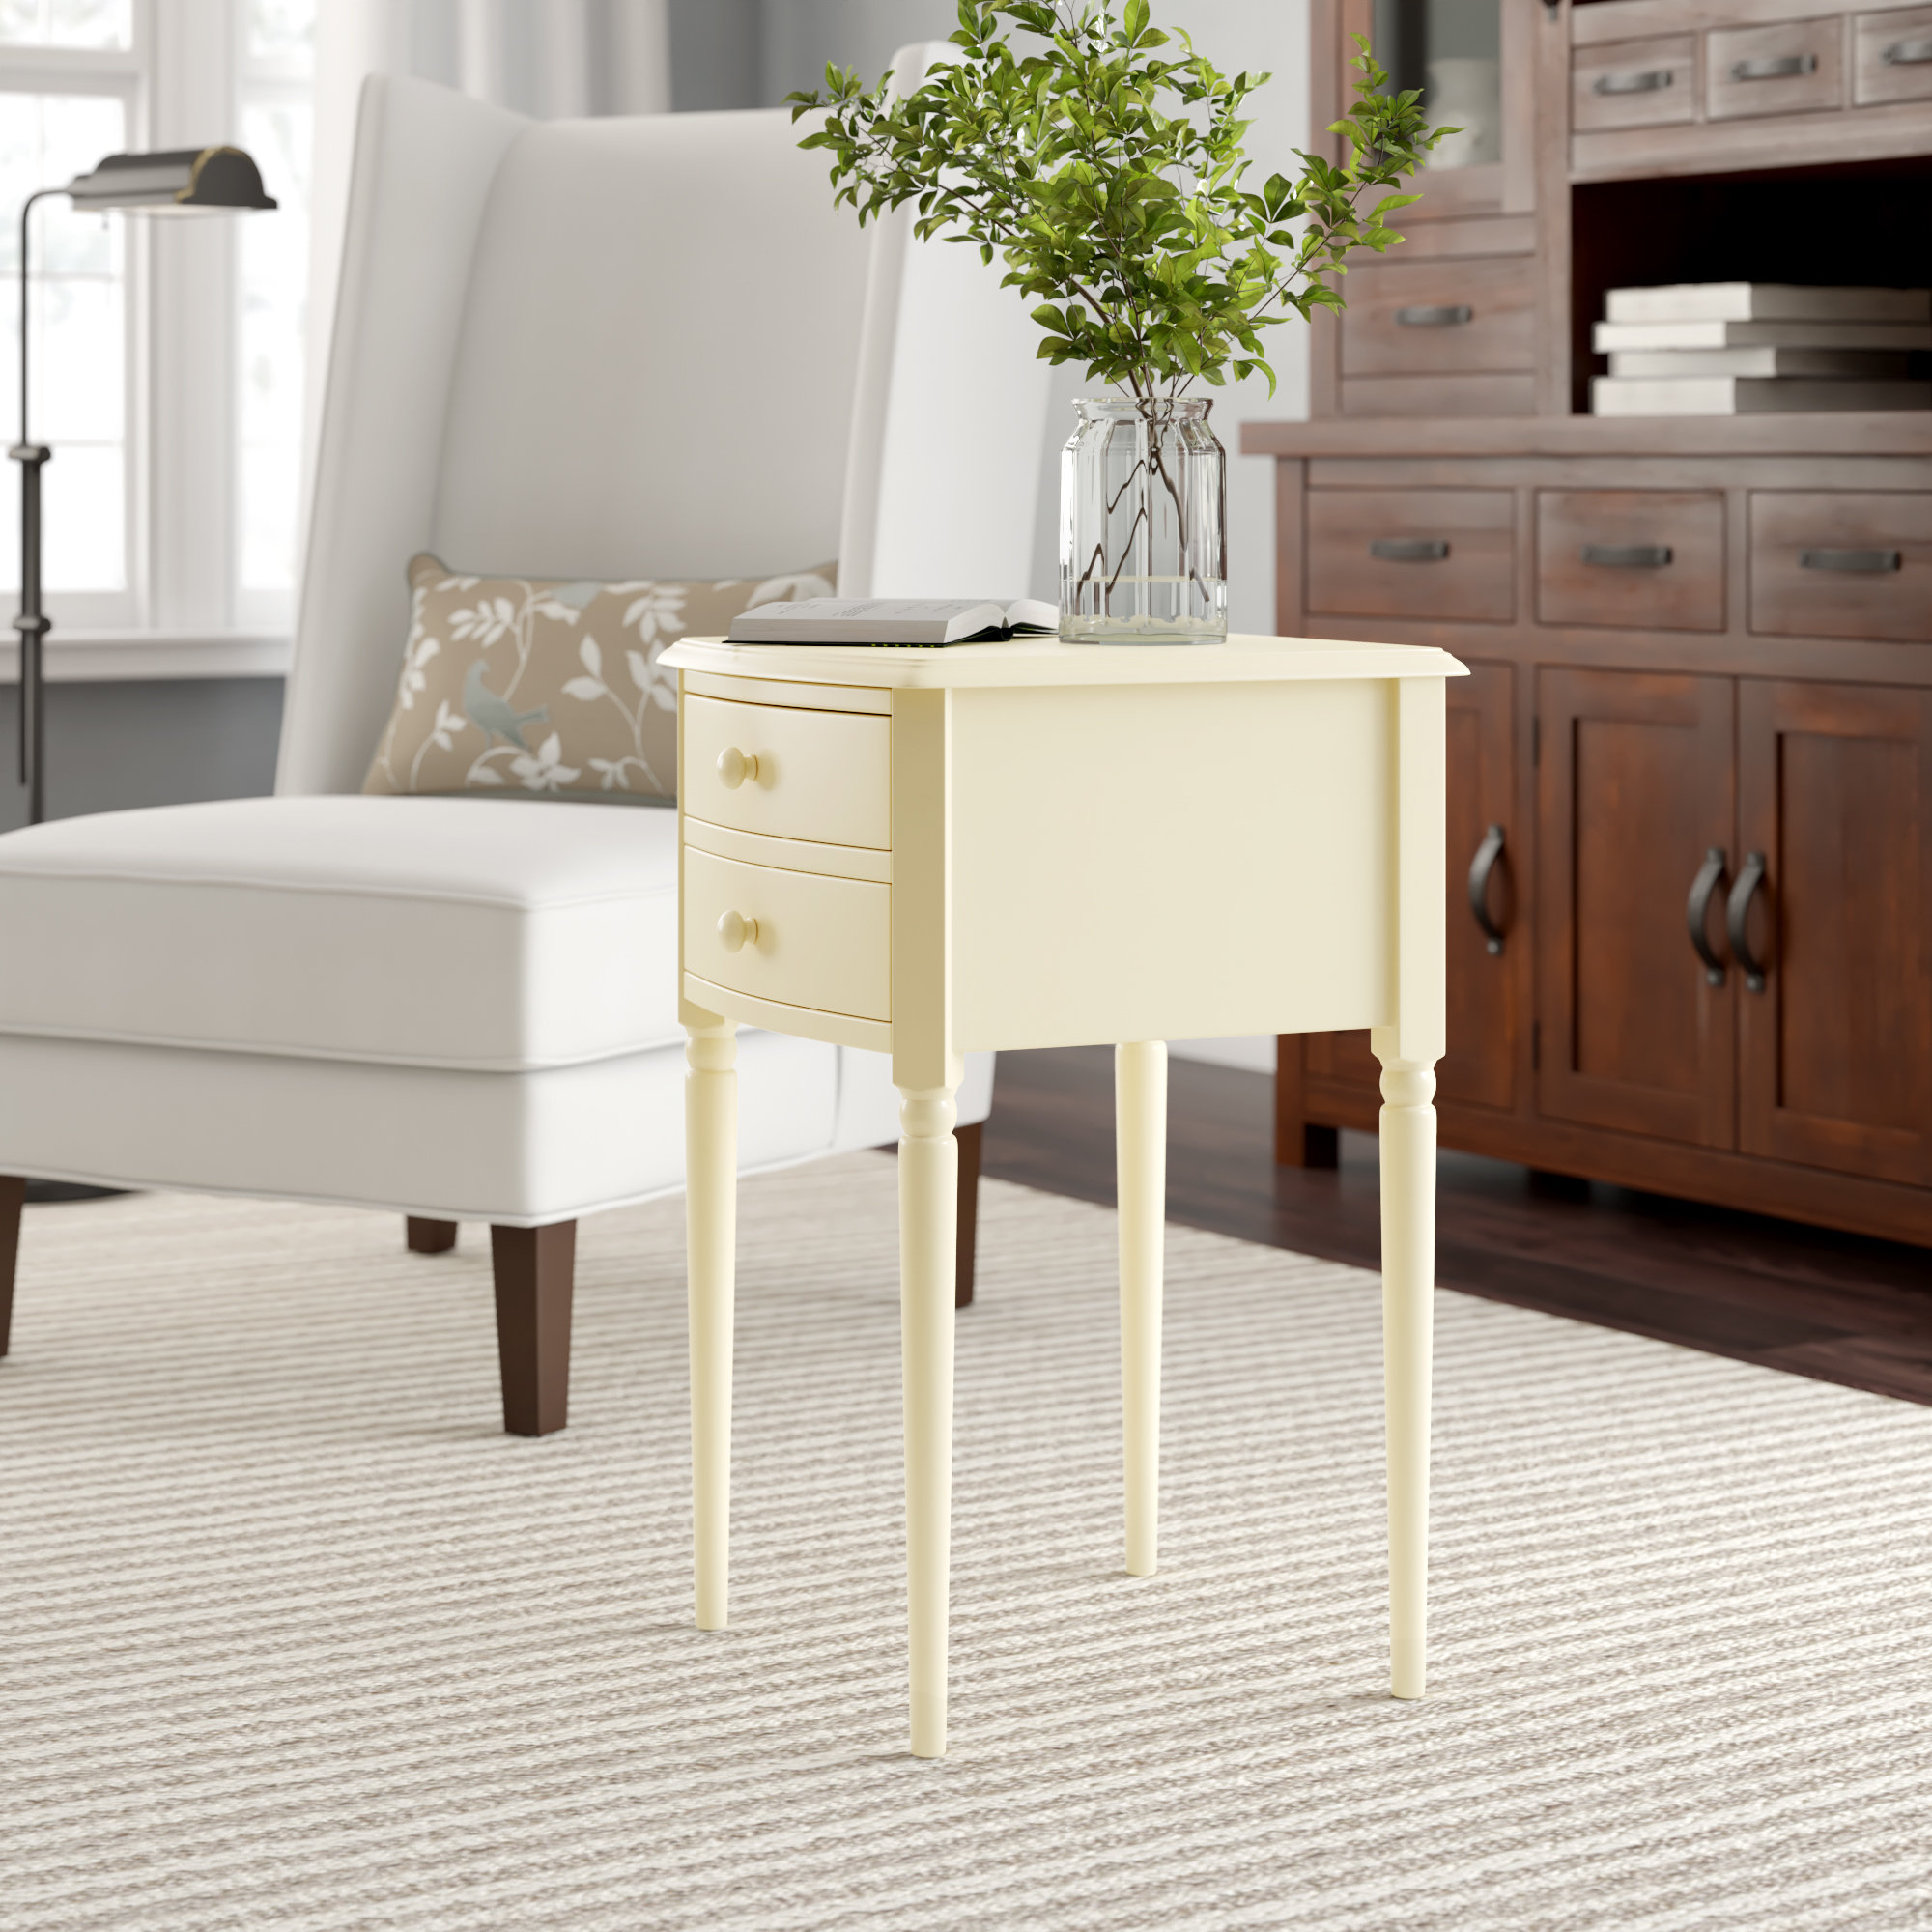 media side table amber room essentials mixed material accent ikea storage bench dining legs wood square for mirrored bedroom end tables round cloth covers contemporary home decor